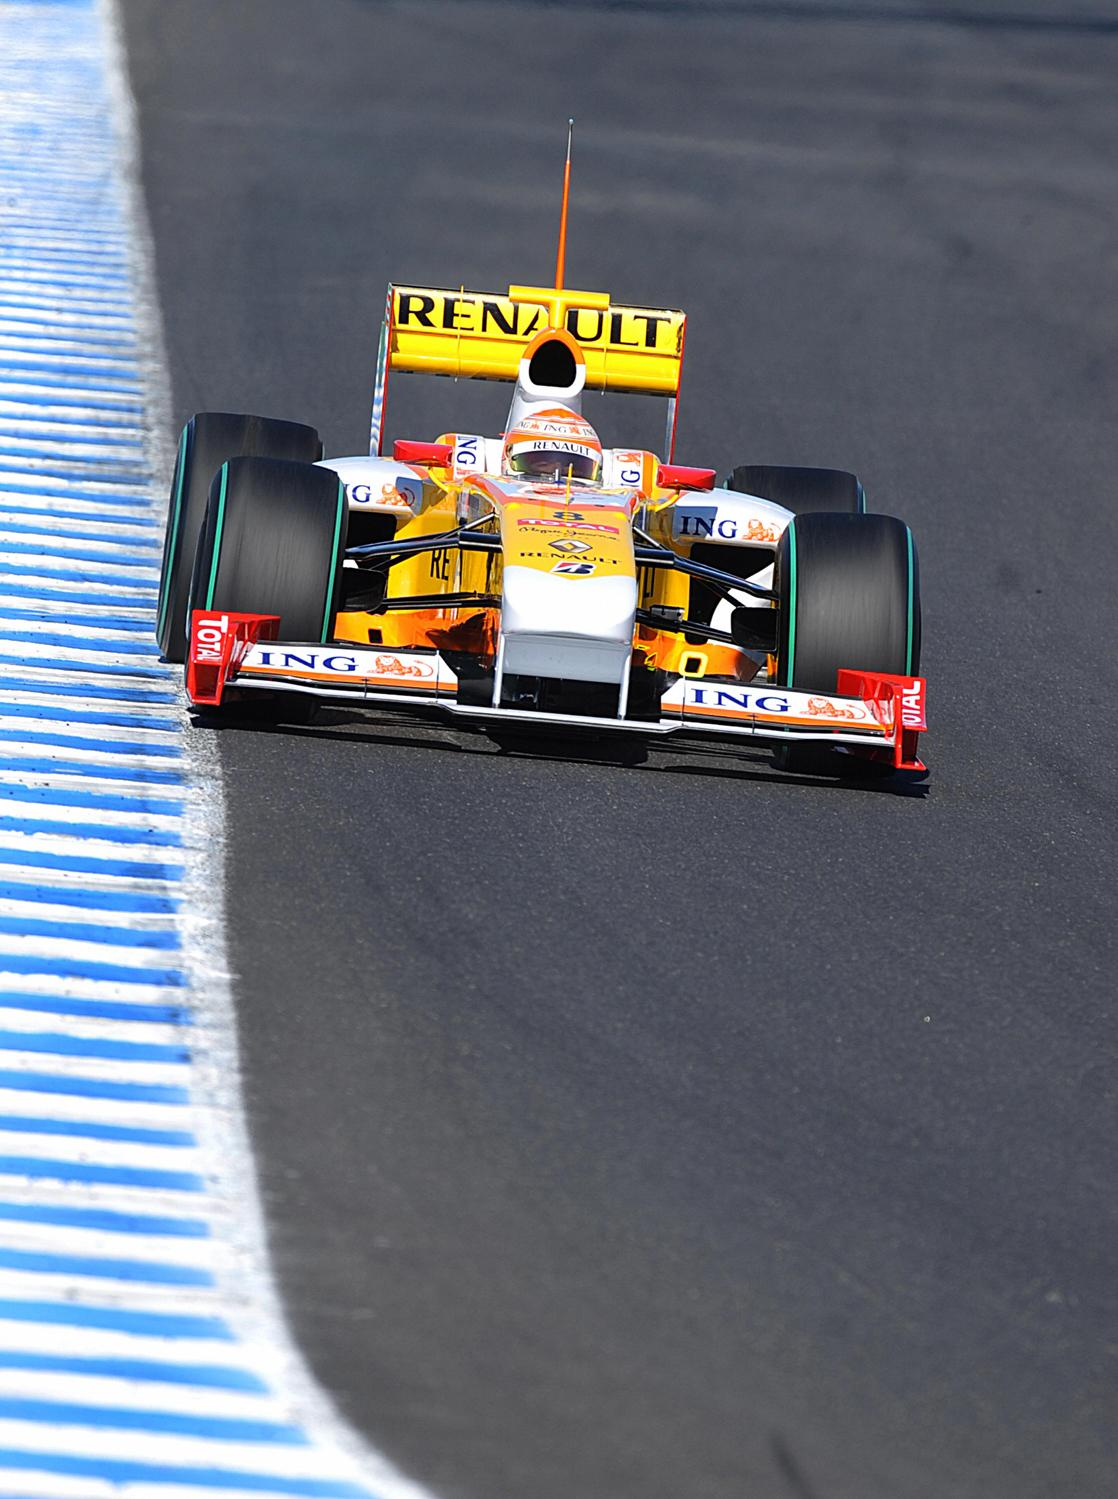 Formula One is on track for an exciting season